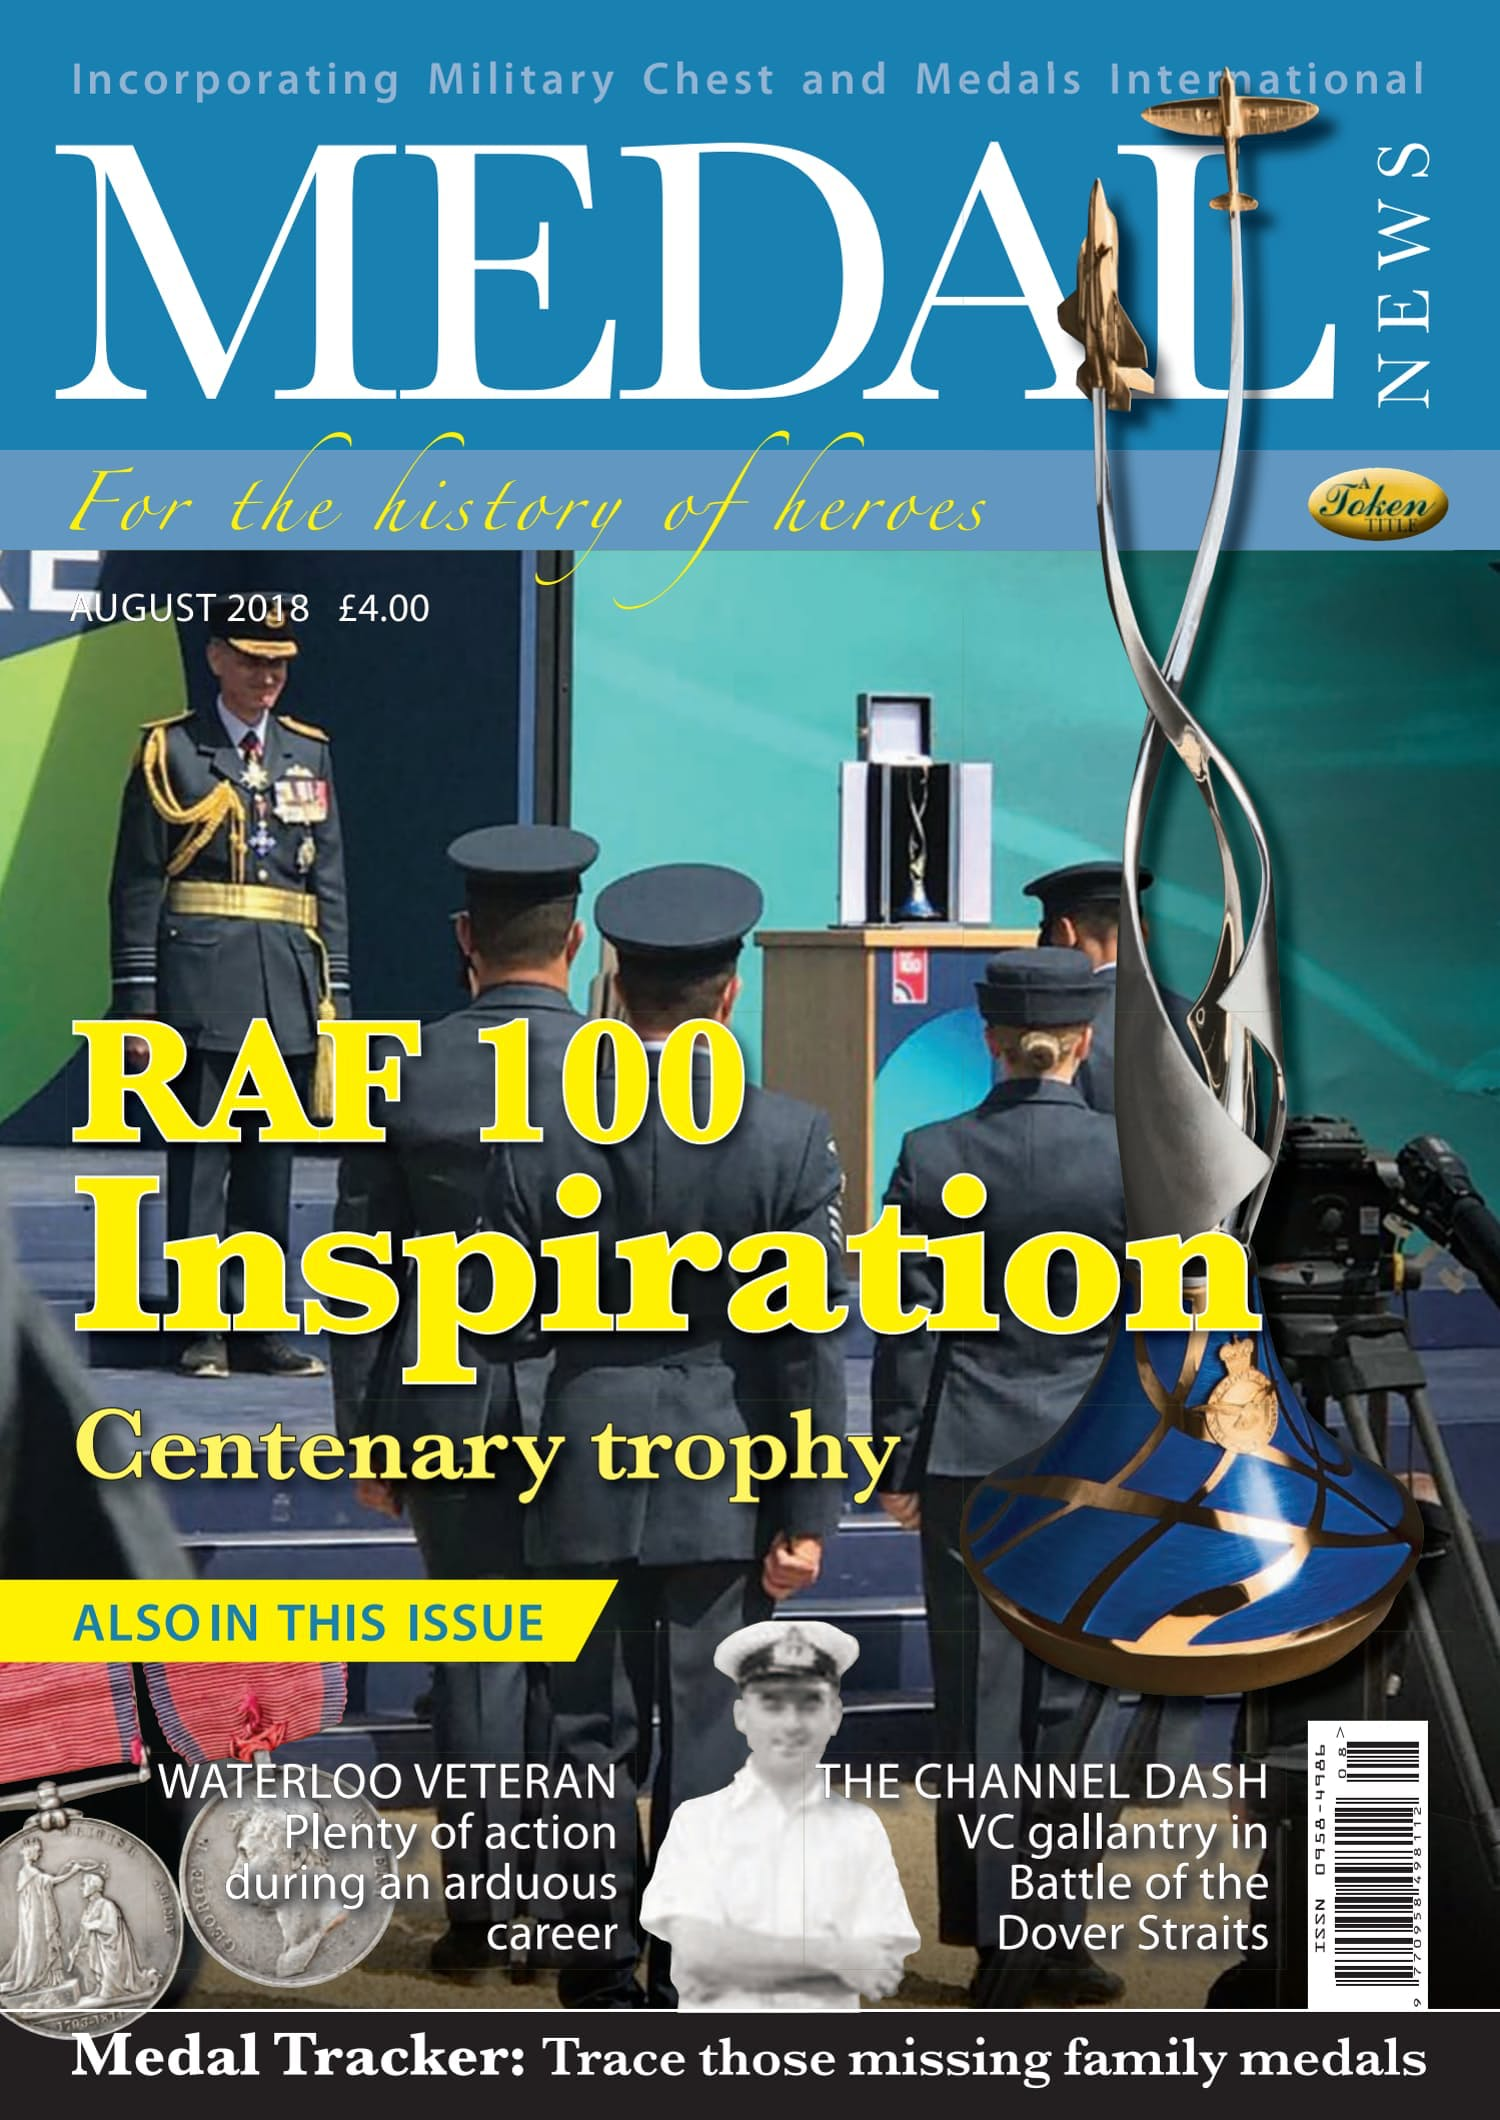 The front cover of Medal News, August 2018 - Volume 56, Number 7